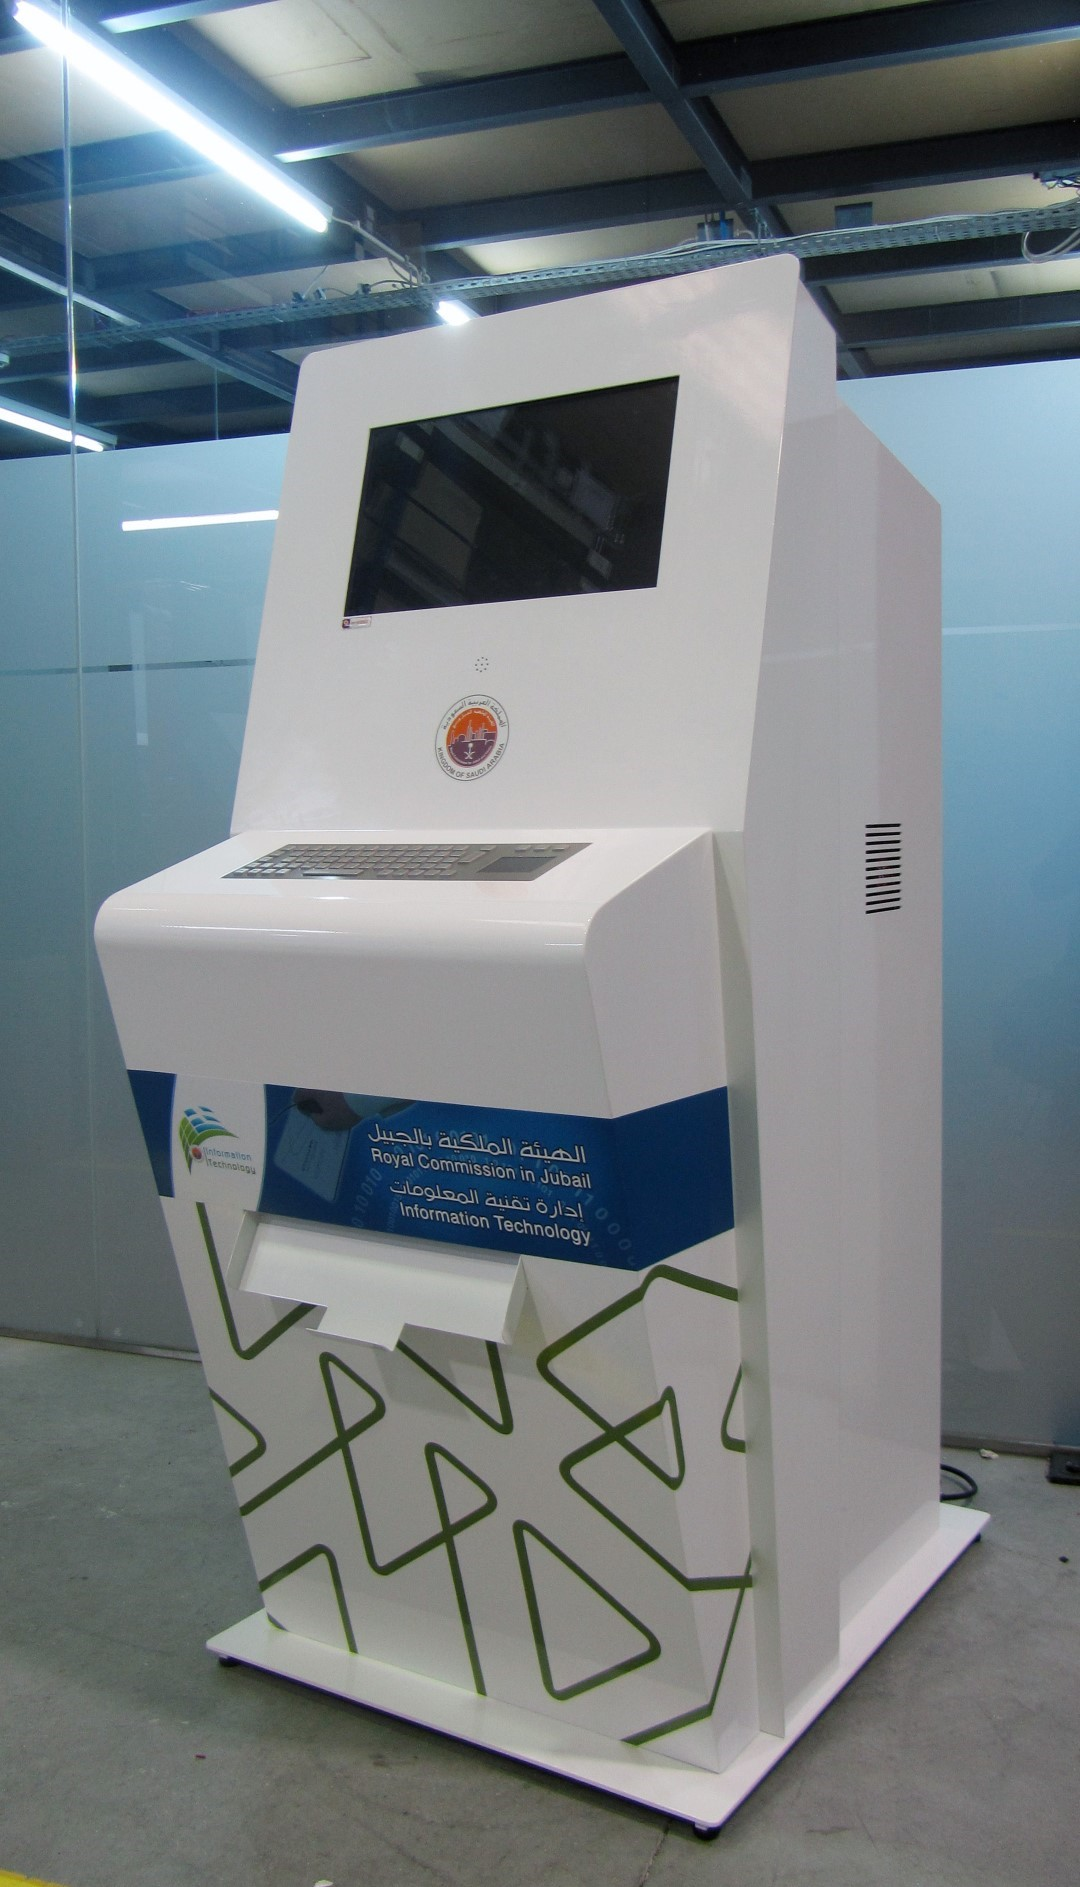 Royal Commission: Improving Staff Efficiency with Self-Service Kiosks